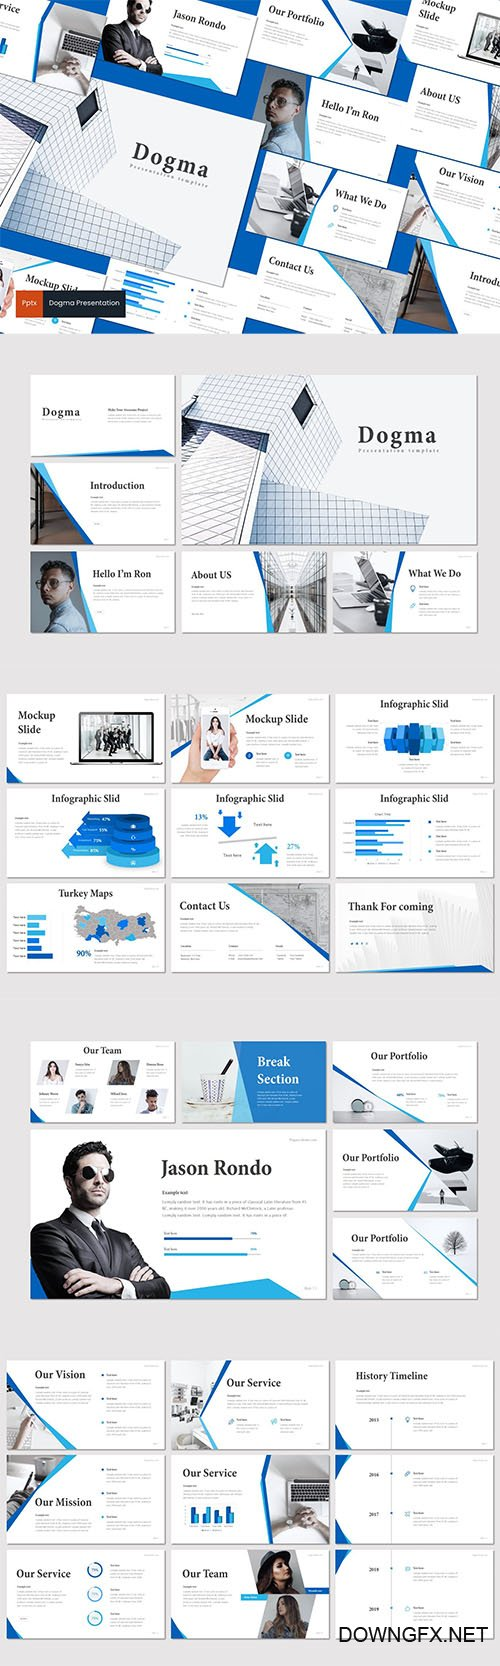 Dogma - Powerpoint, Keynote and Google Slides Templates